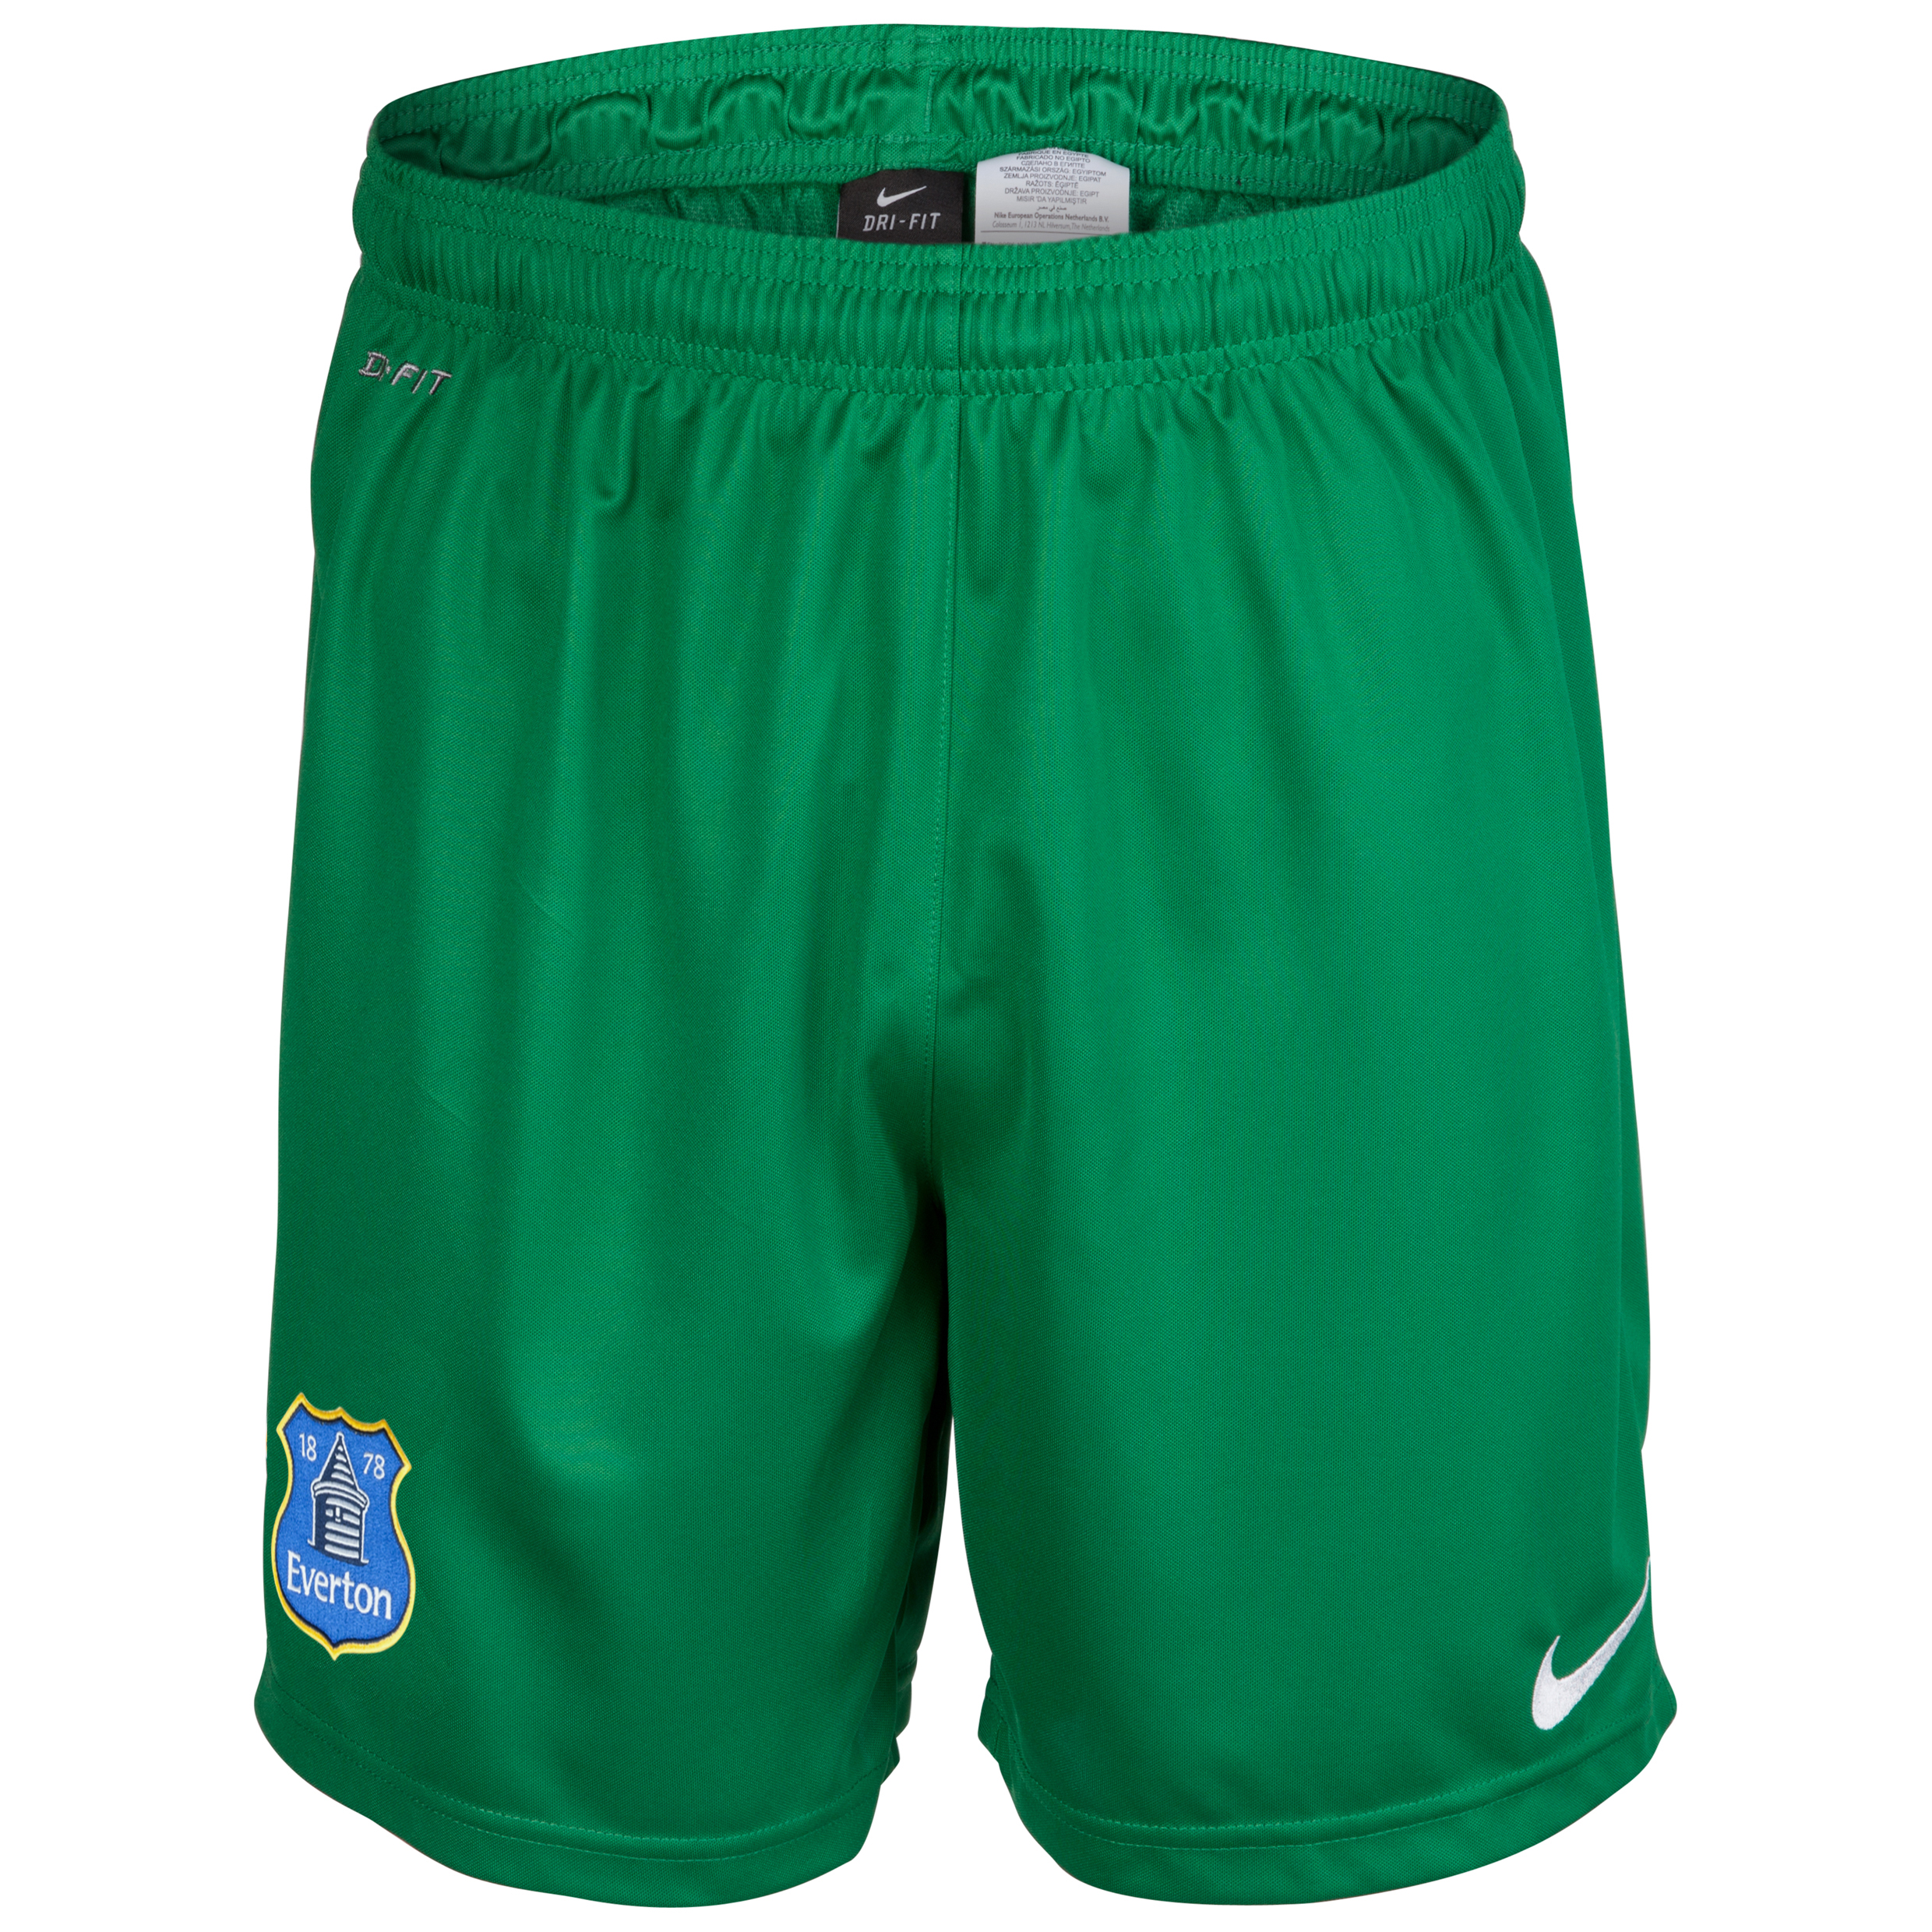 Everton Away Goalkeeper Short 2013/14